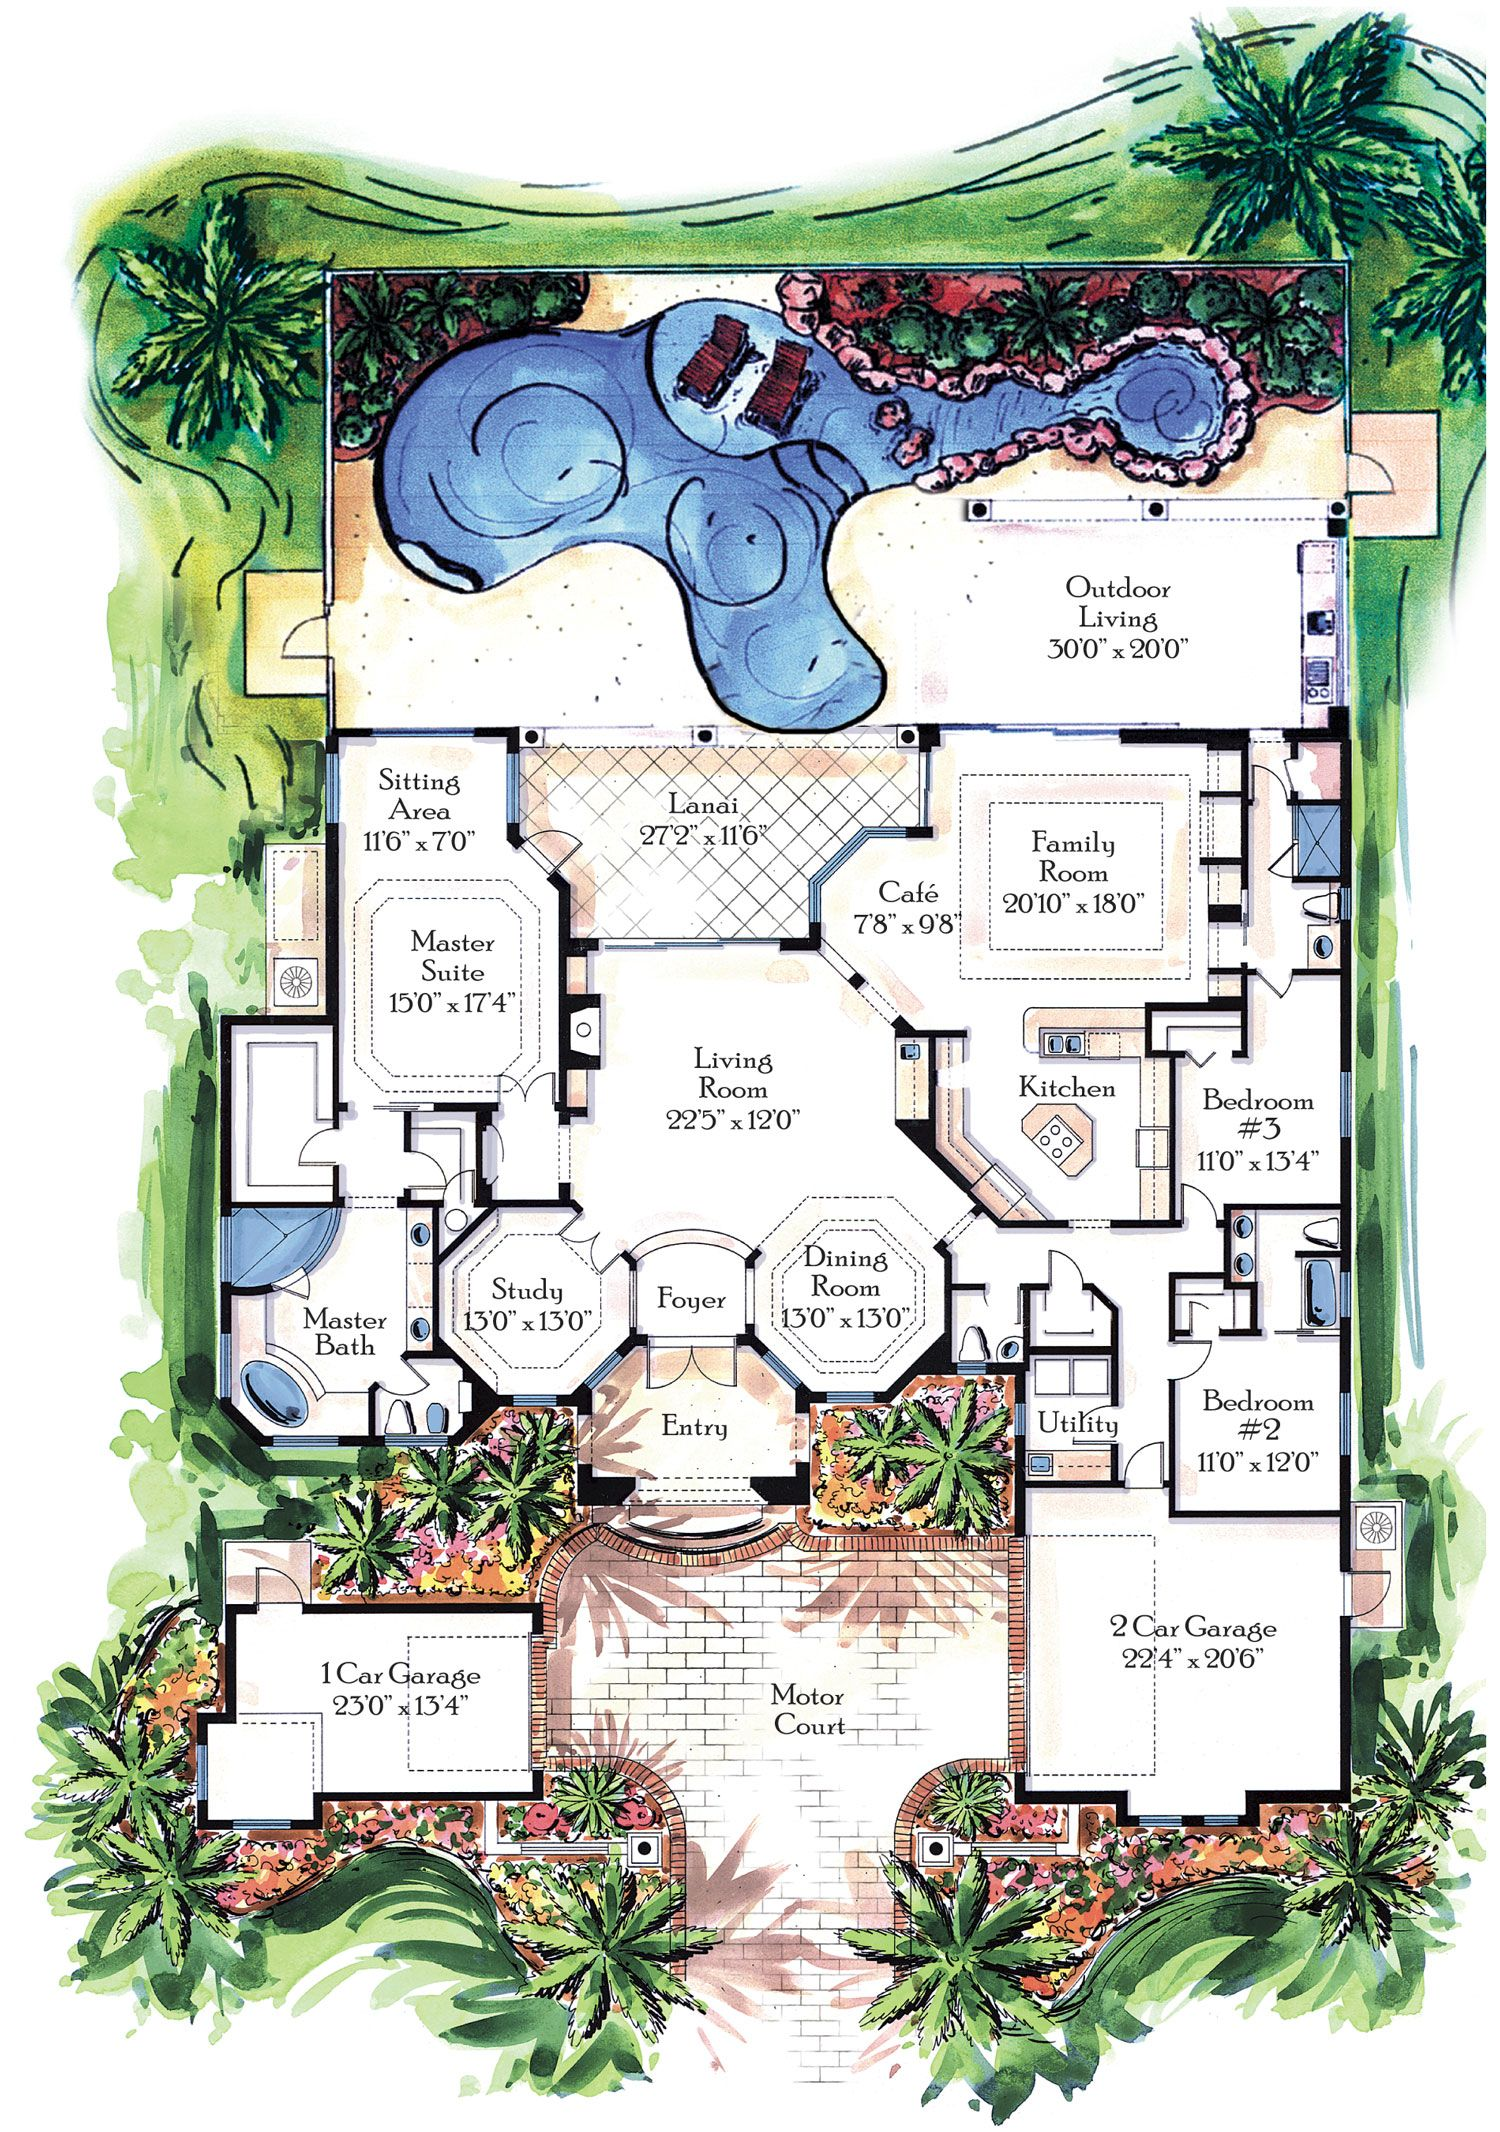 Luxury house plans designs - Ultra Luxury House Plans T Lovely Luxury House Floor Plans Designs Luxury Log Cabin Home Floor